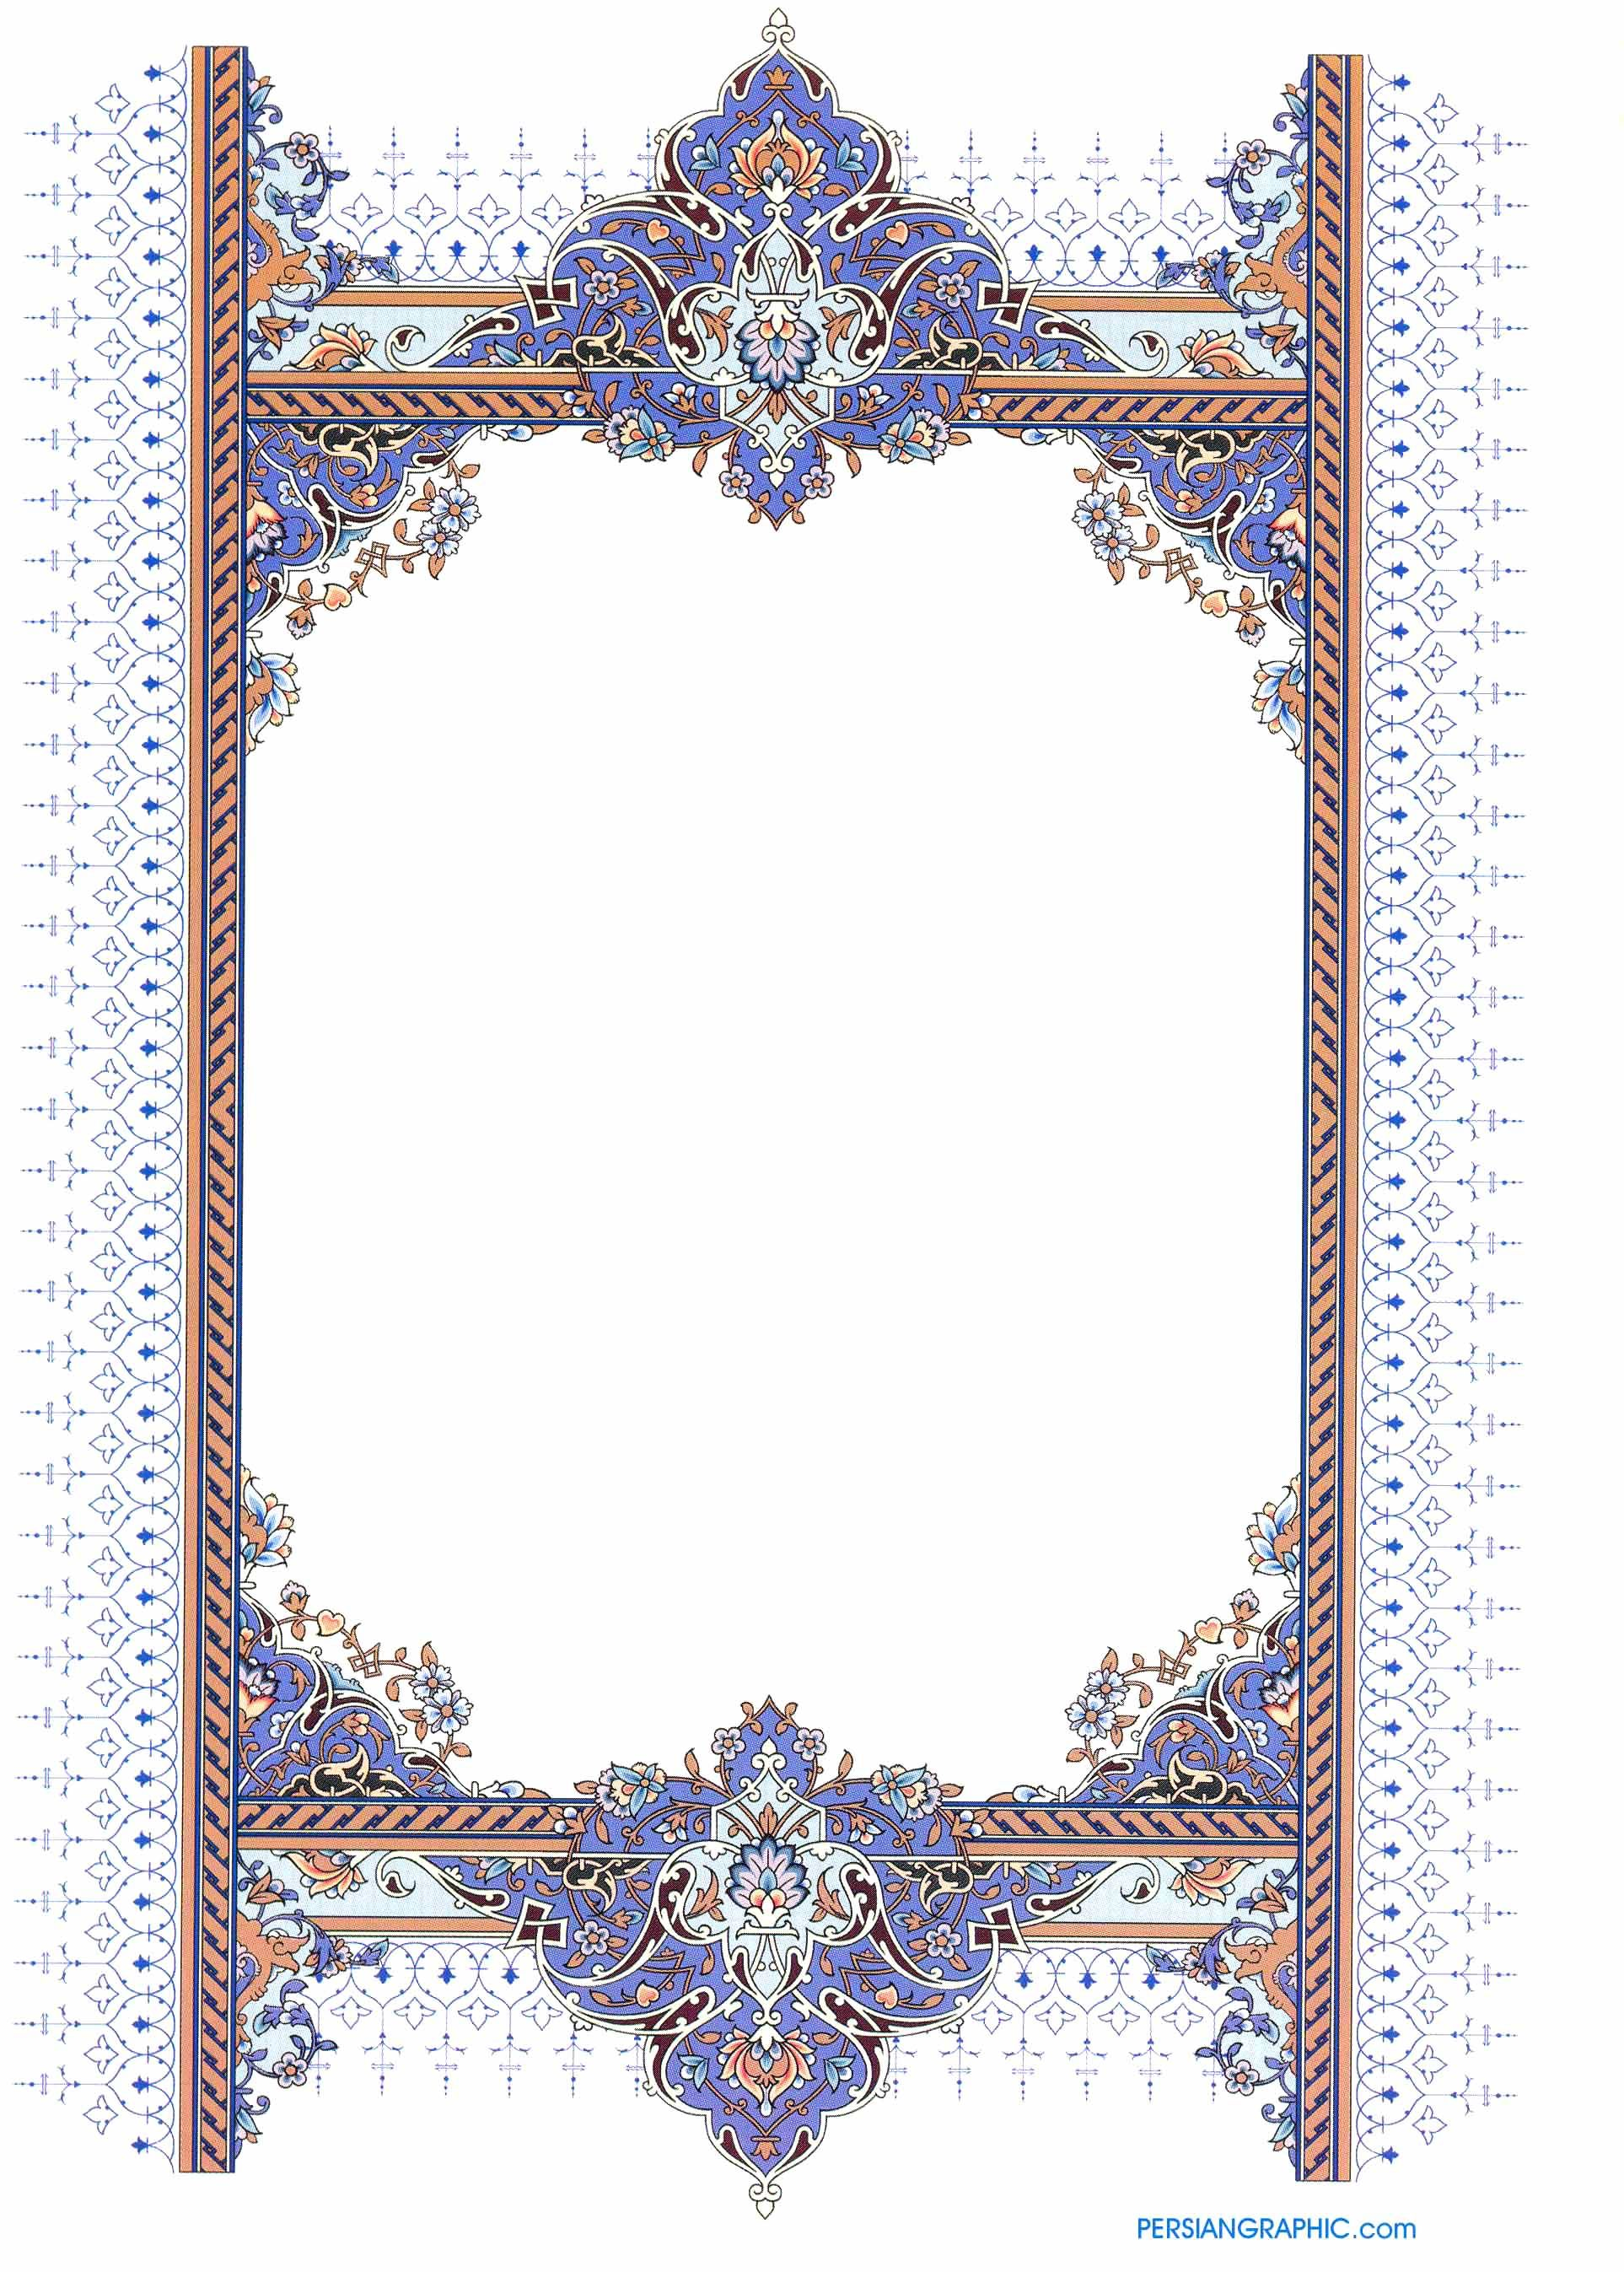 persian graphic de - Recherche Google | Calligraphy, 2019 ... Islamic Art Design Border